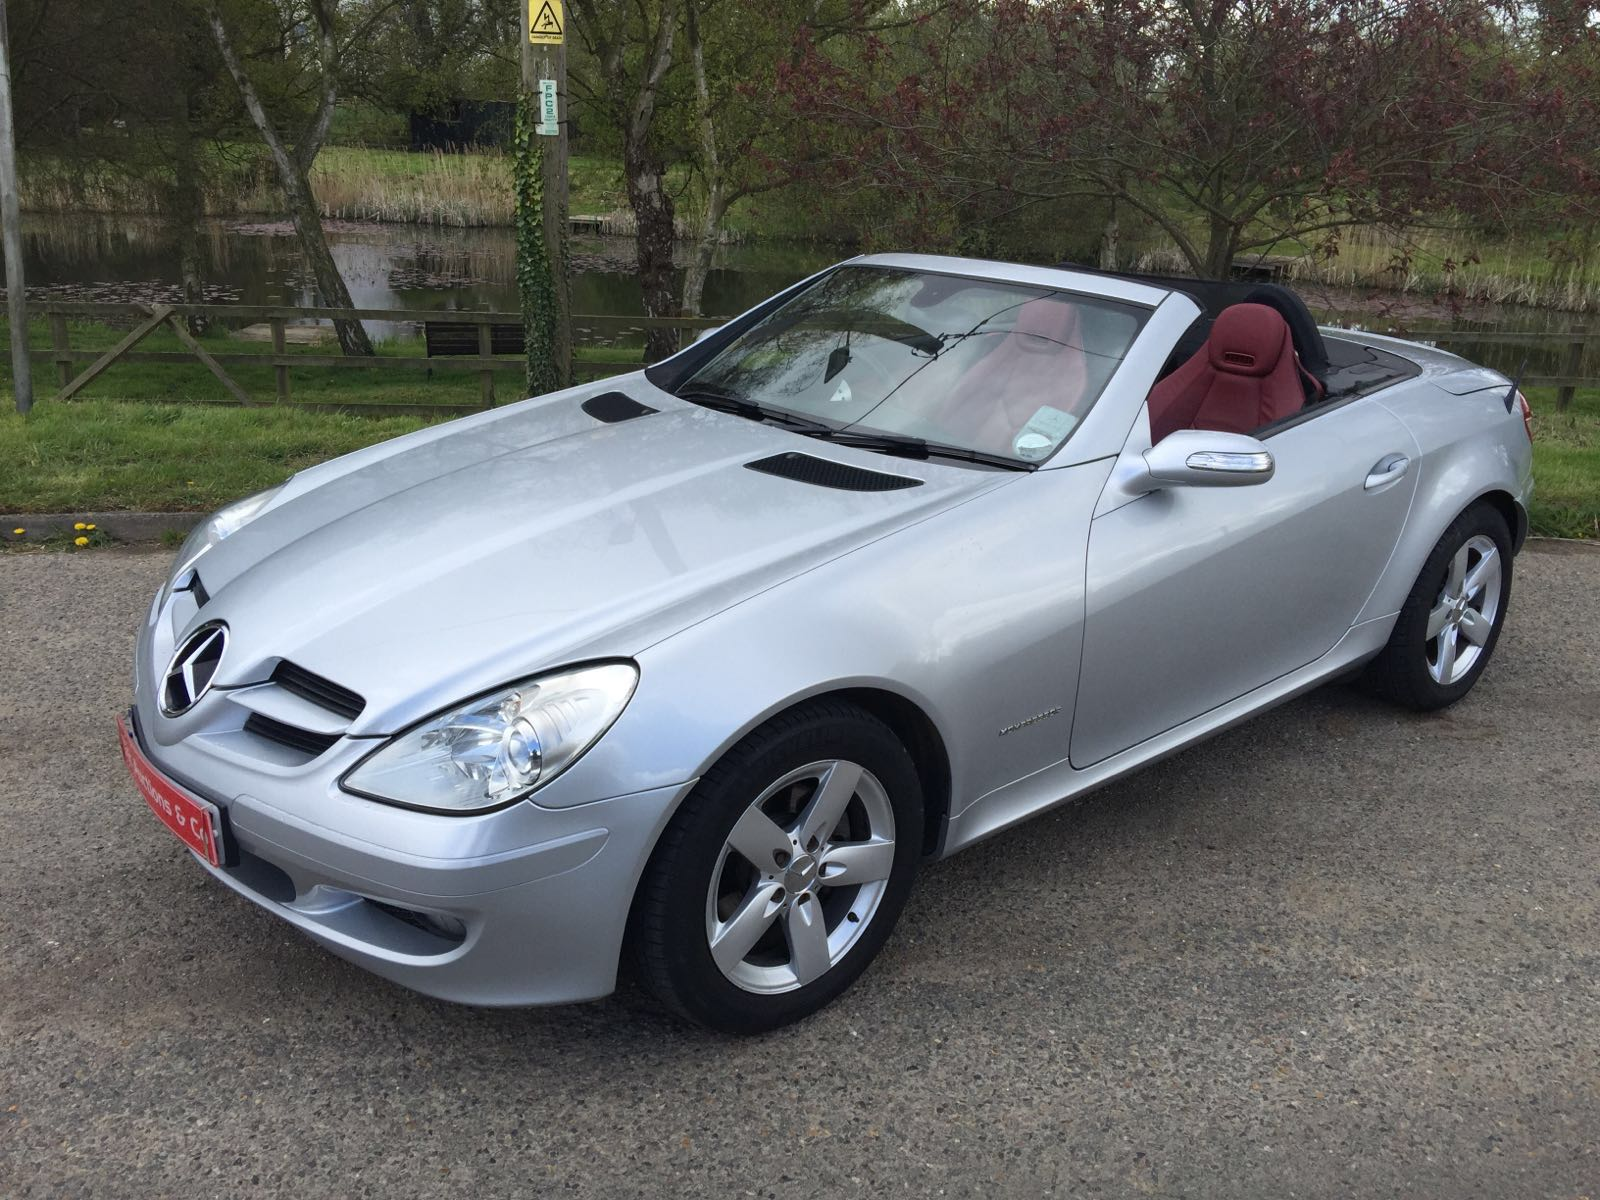 reg 2005 55 mileage 84 199 mercedes benz slk 200 compressor red leather full service history. Black Bedroom Furniture Sets. Home Design Ideas